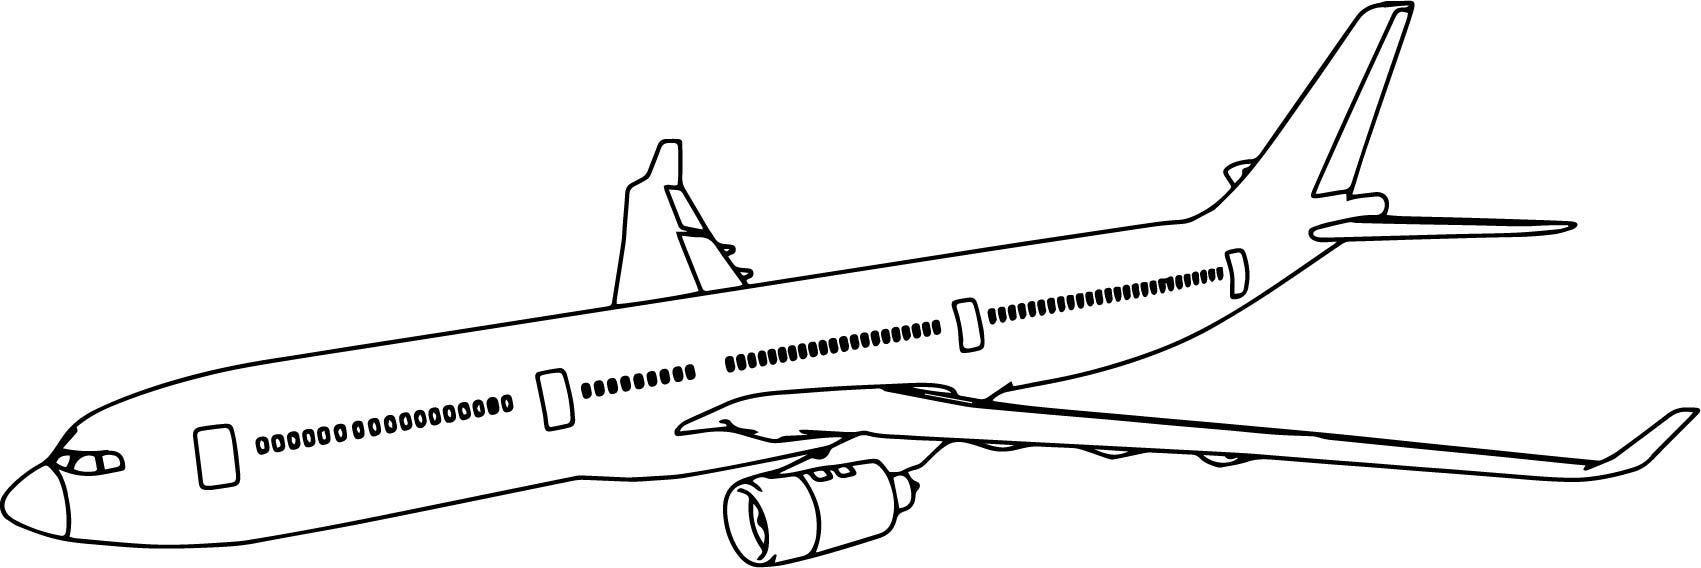 a380 coloring pages airbus coloring download airbus coloring for free 2019 a380 coloring pages